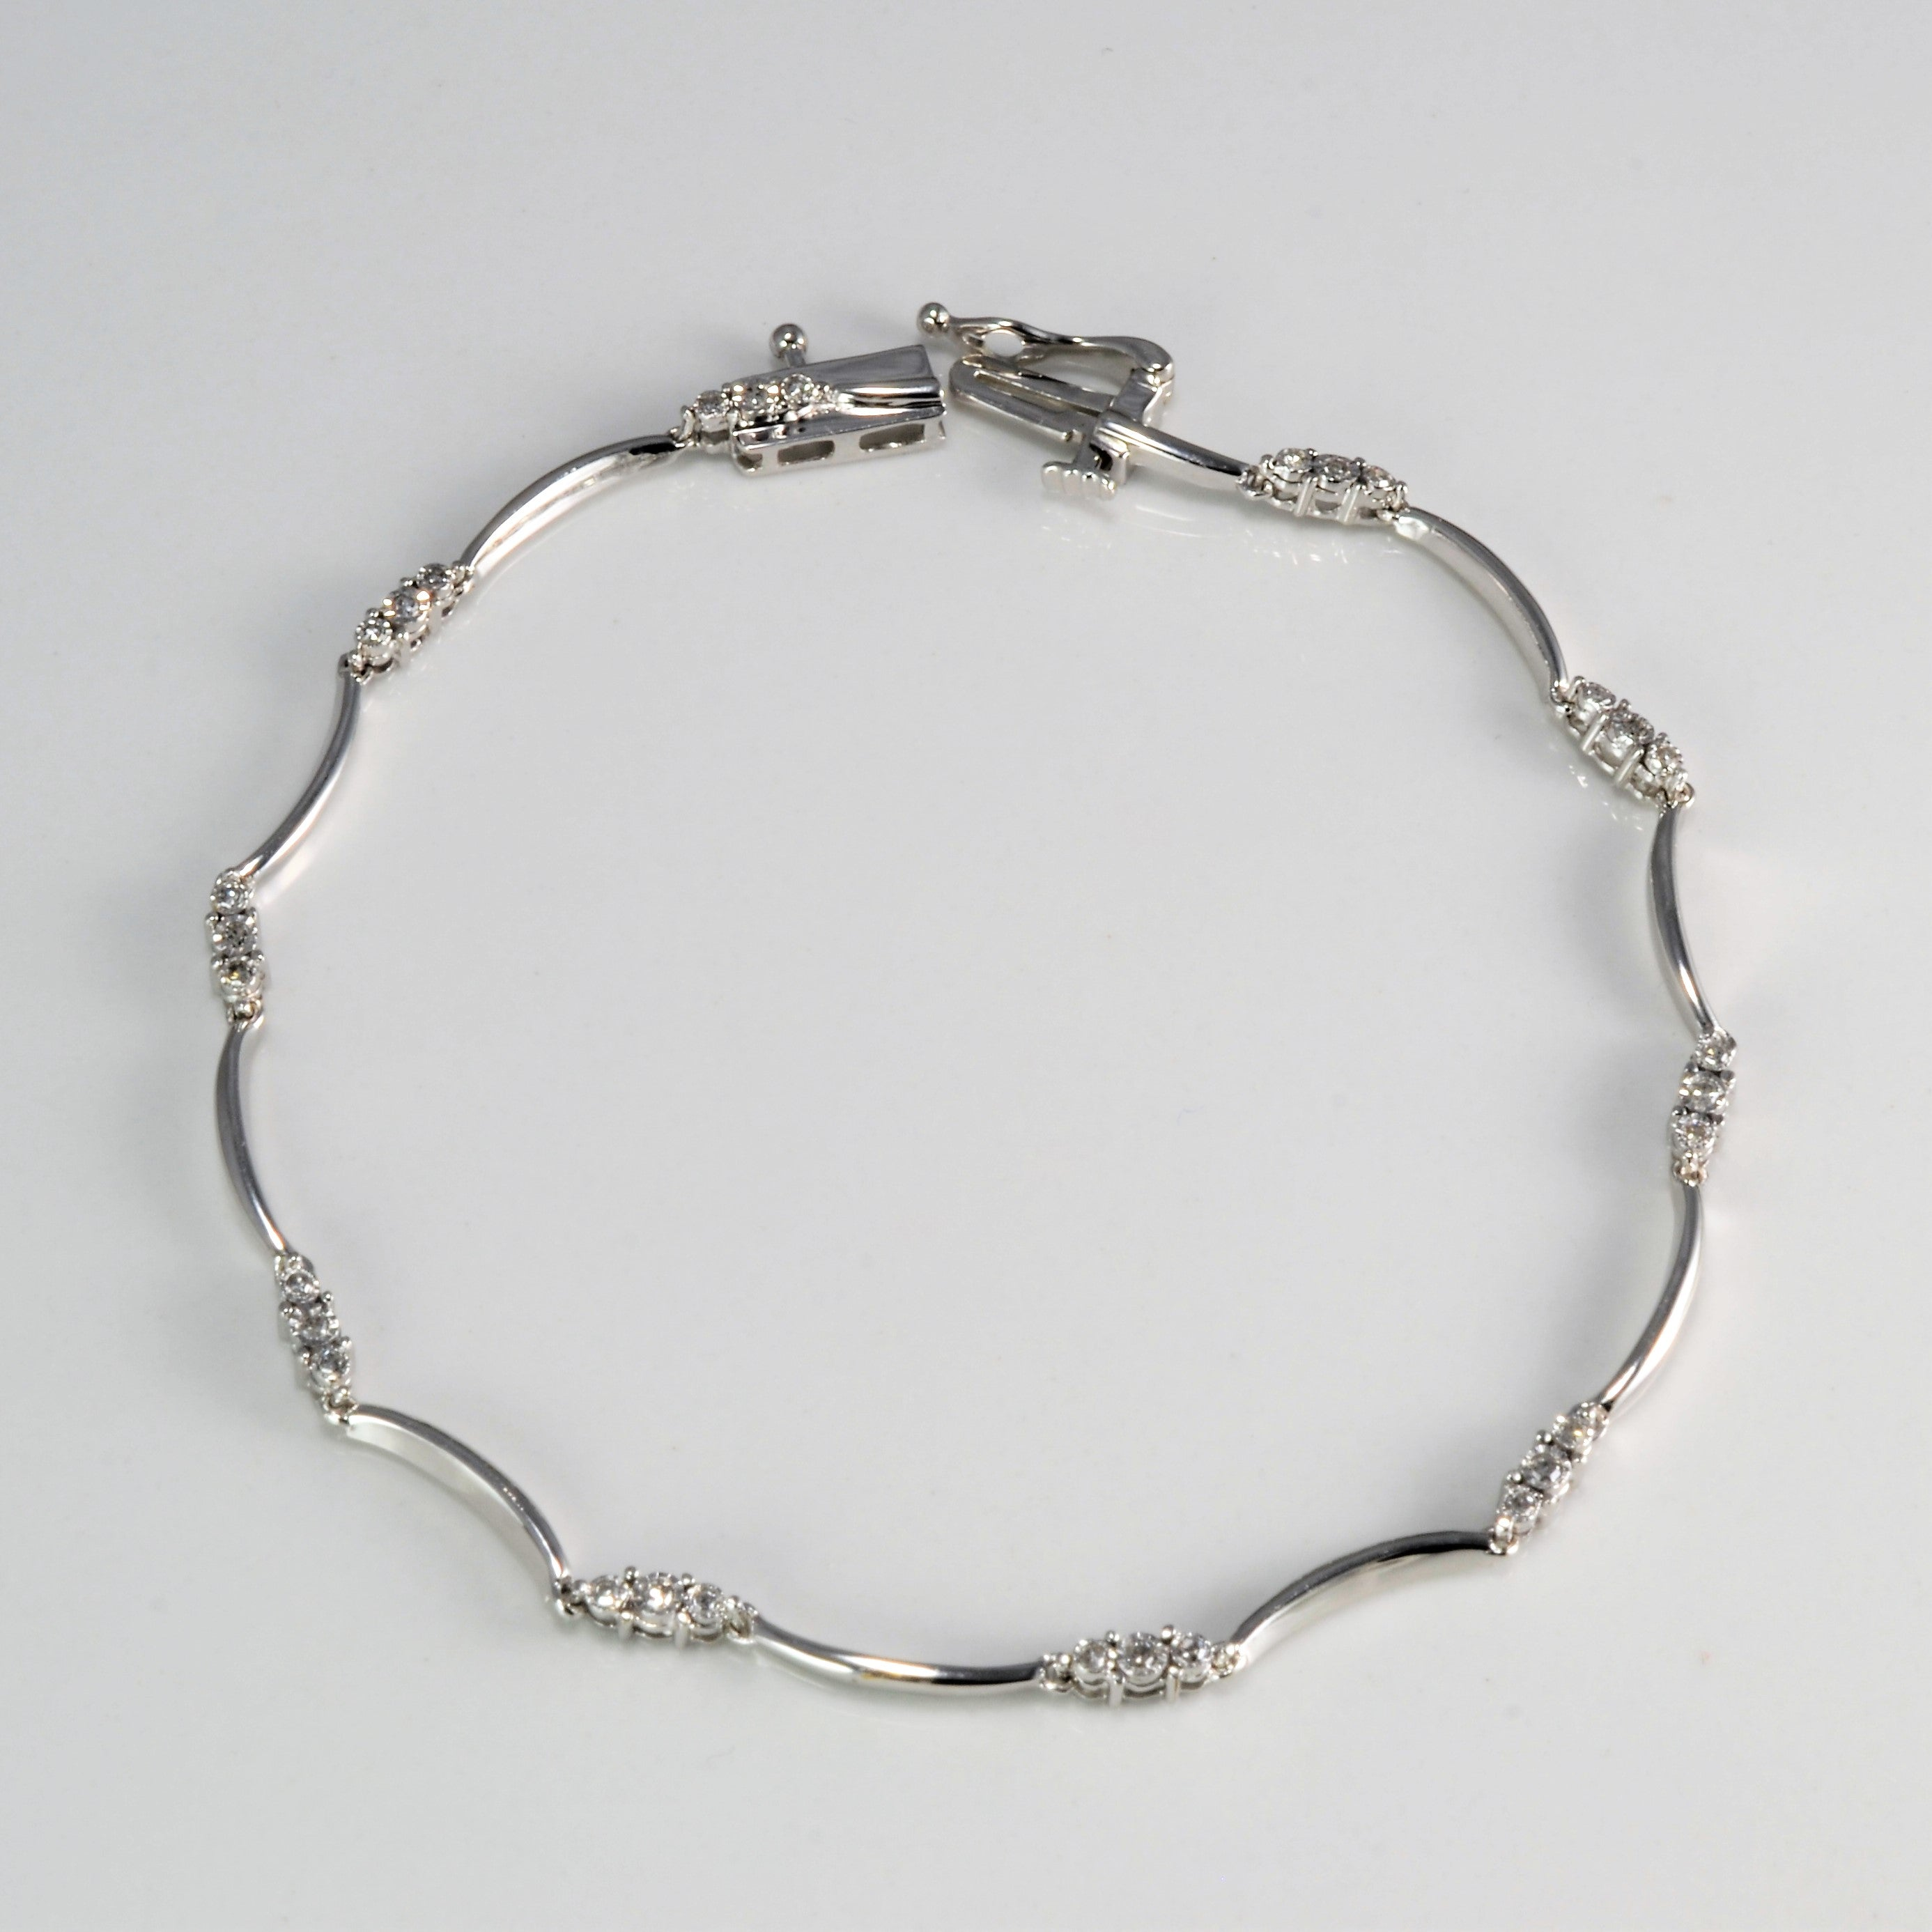 Pave Diamond Chain Bracelet | 0.15 ctw, 7''|